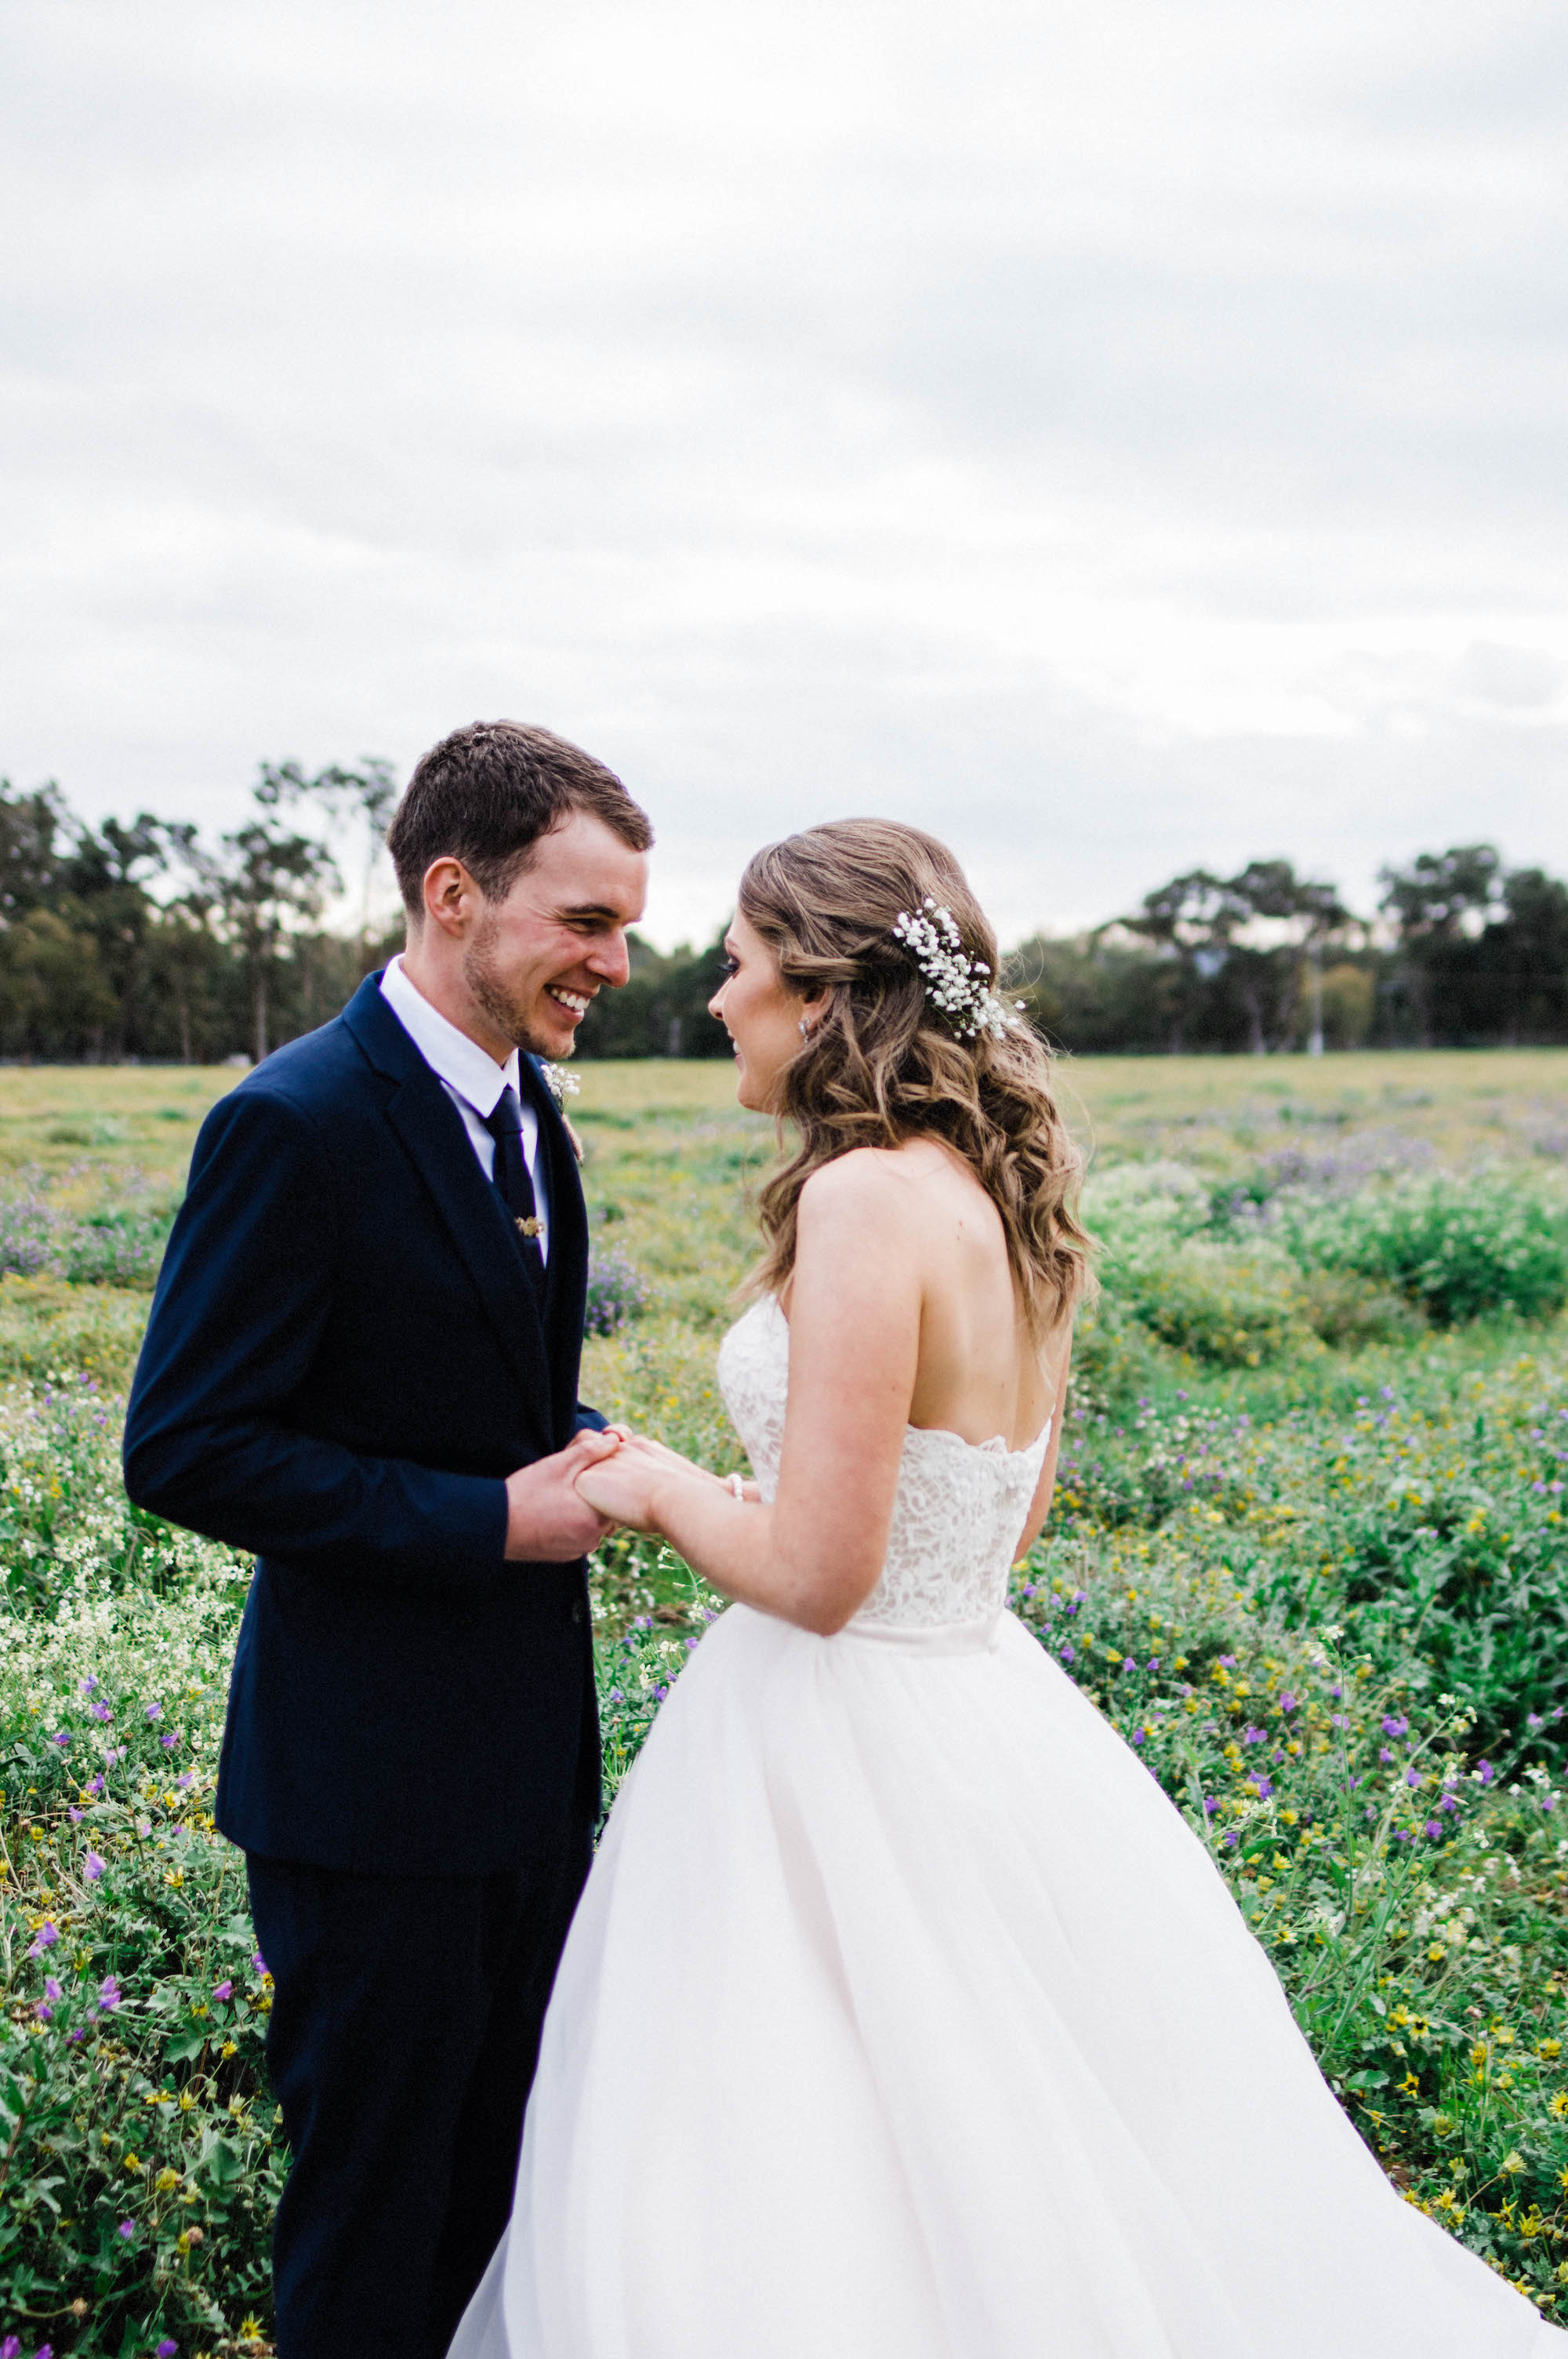 Natural wedding photography of the bride & groom laughing together in a field of spring flowers in Australia's countryside.